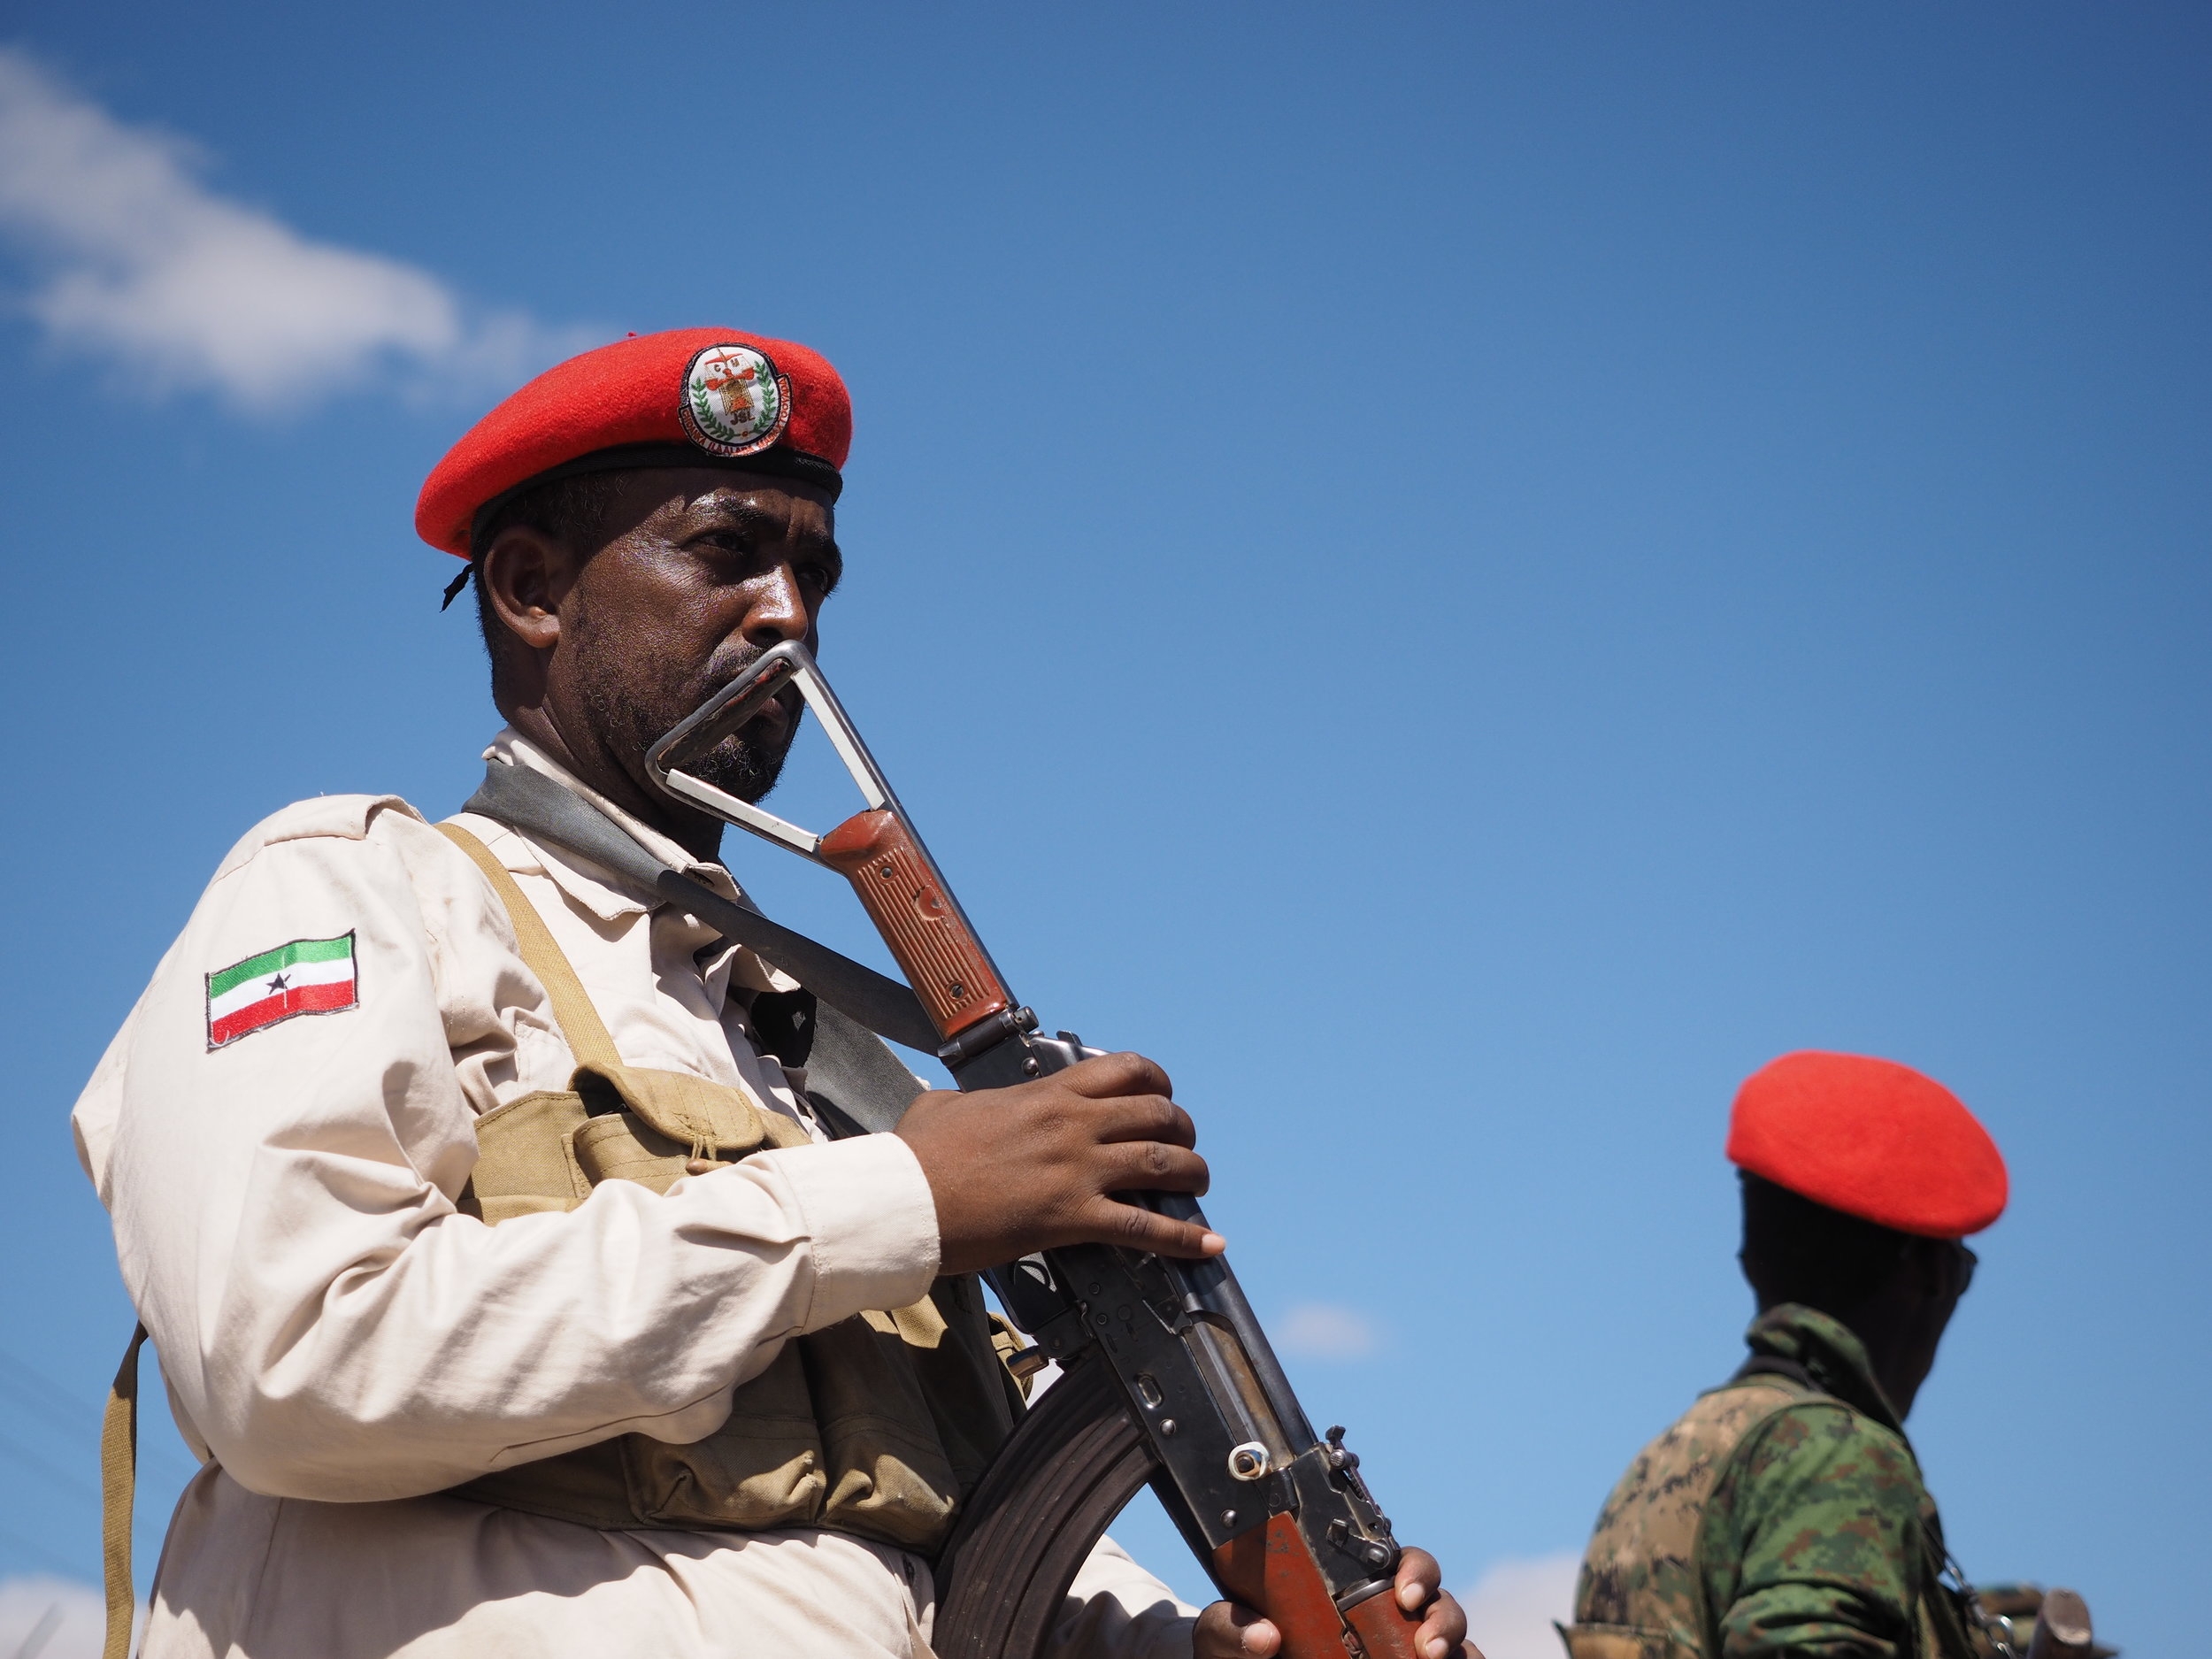 Soldiers guard the President at the Independence Day parade.